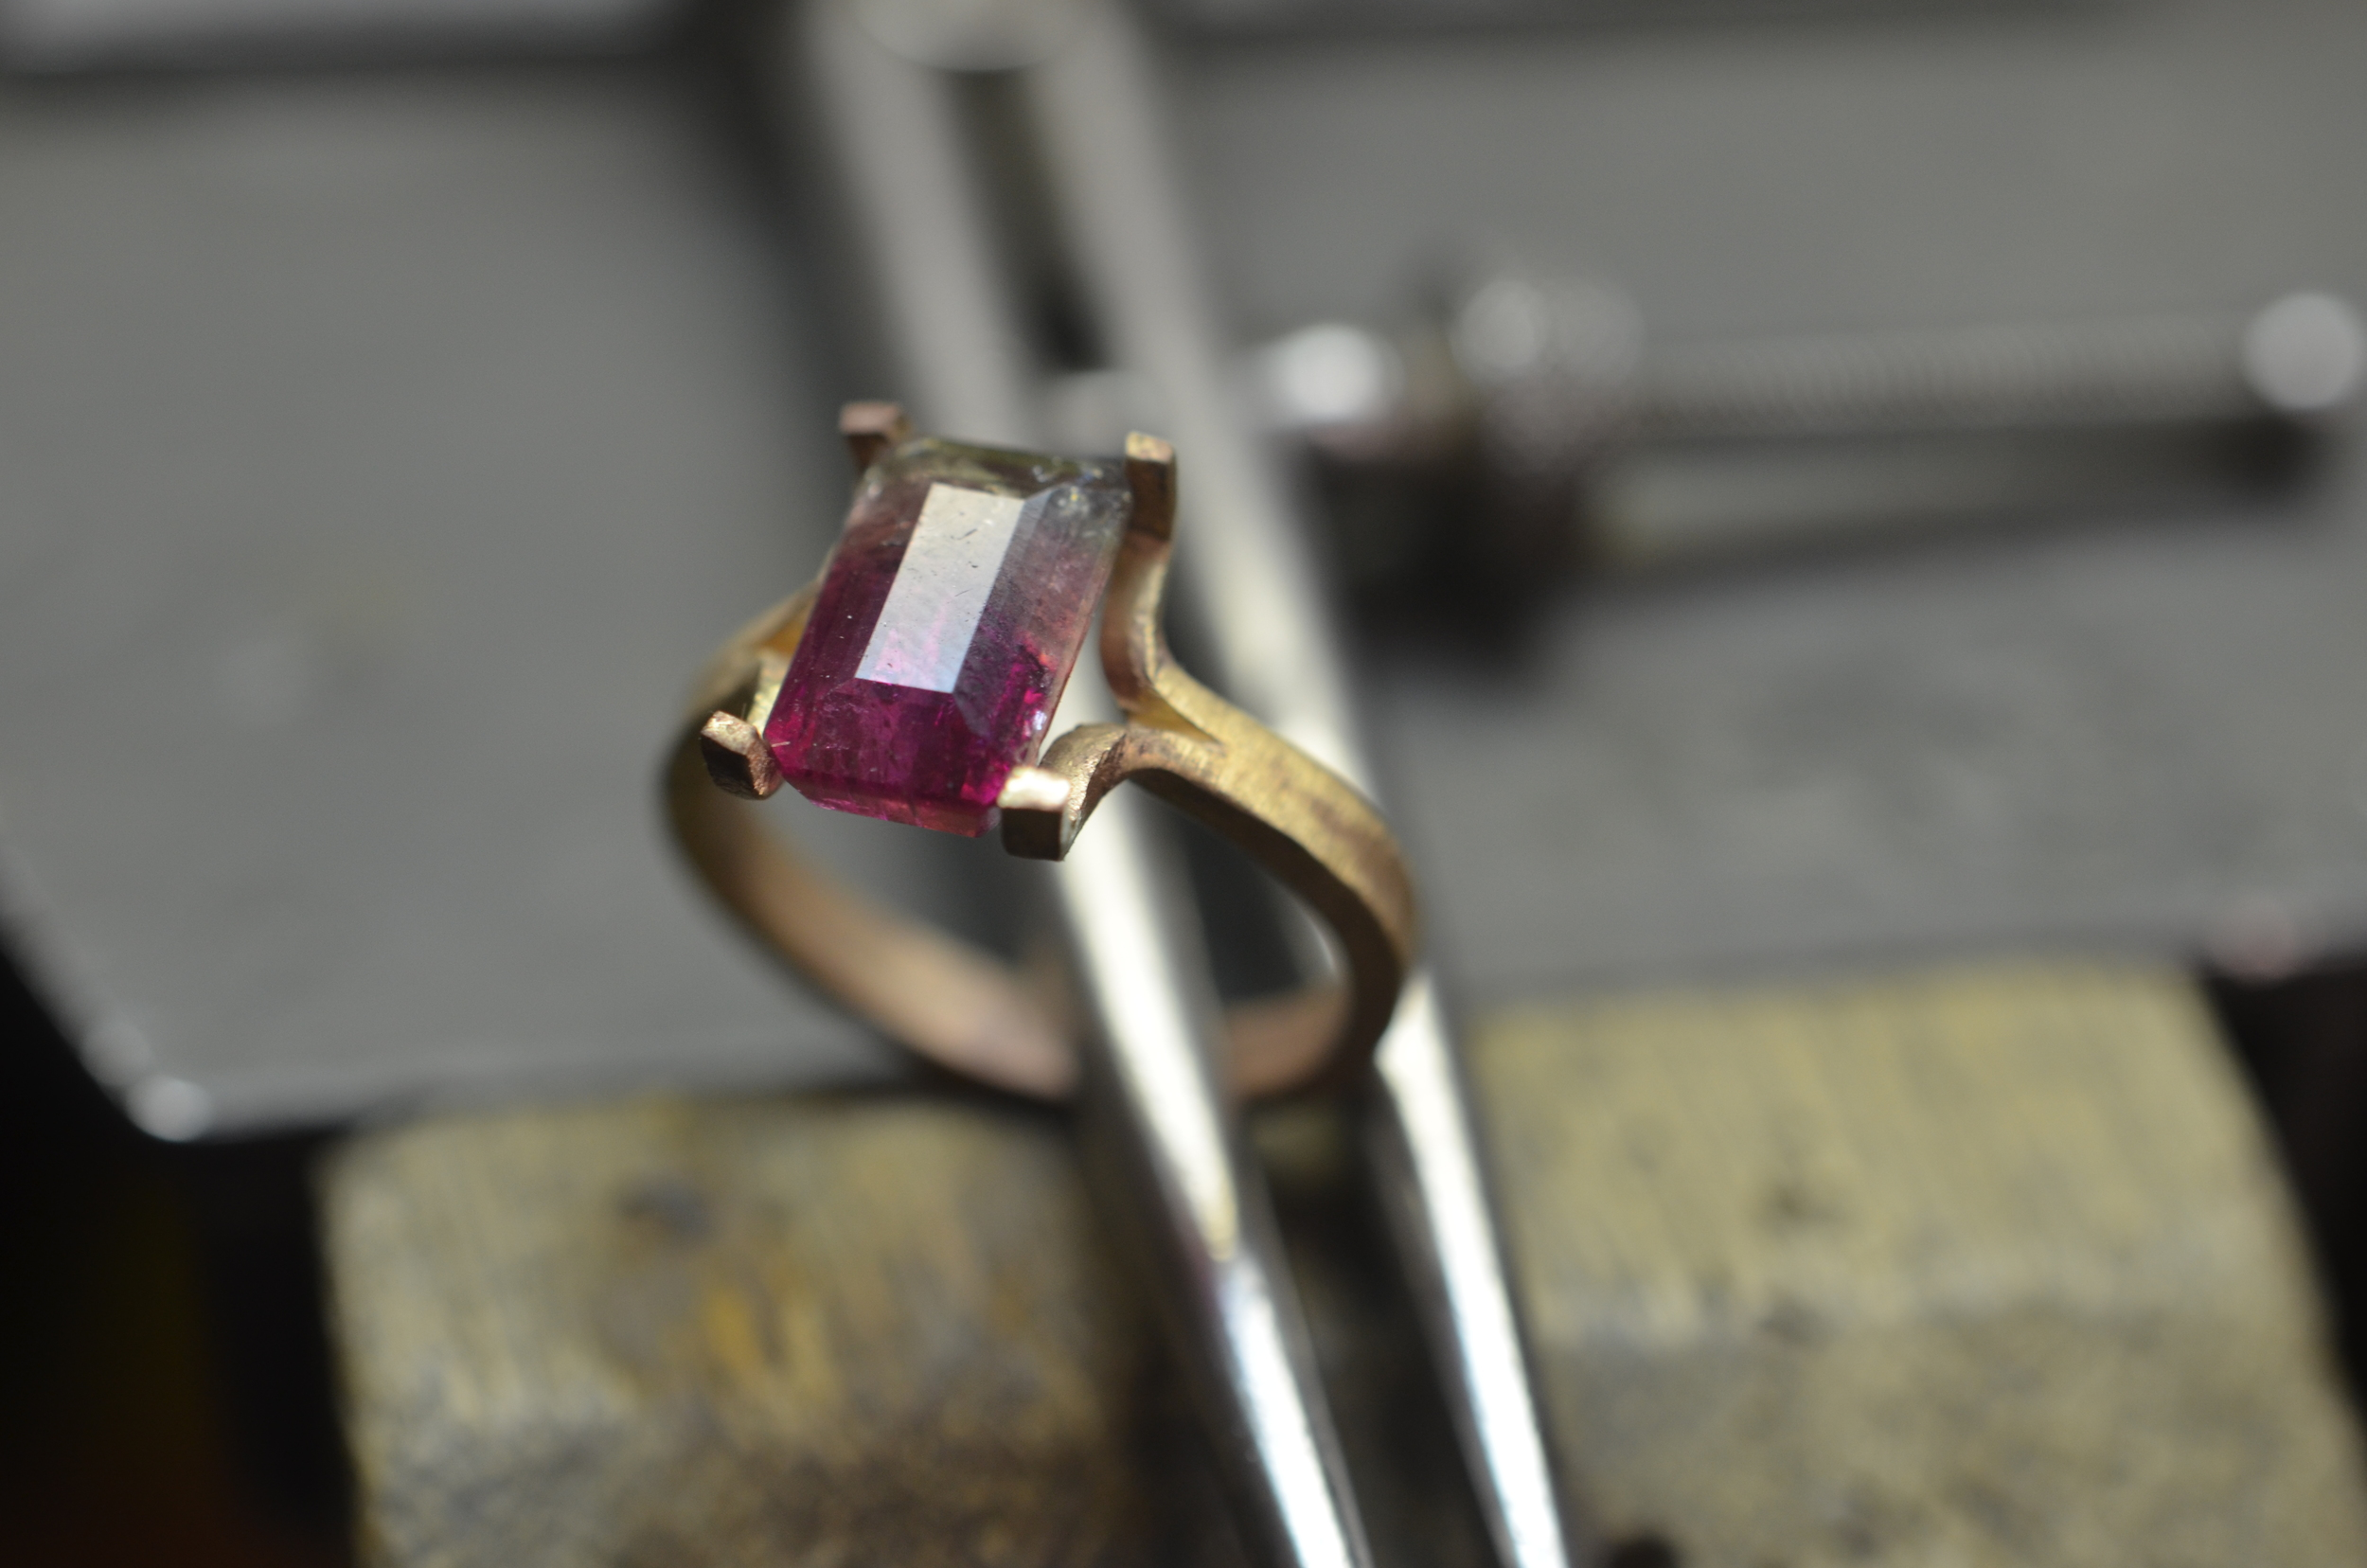 Preliminary fitting of the Tourmaline after fabricating the basic setting design.